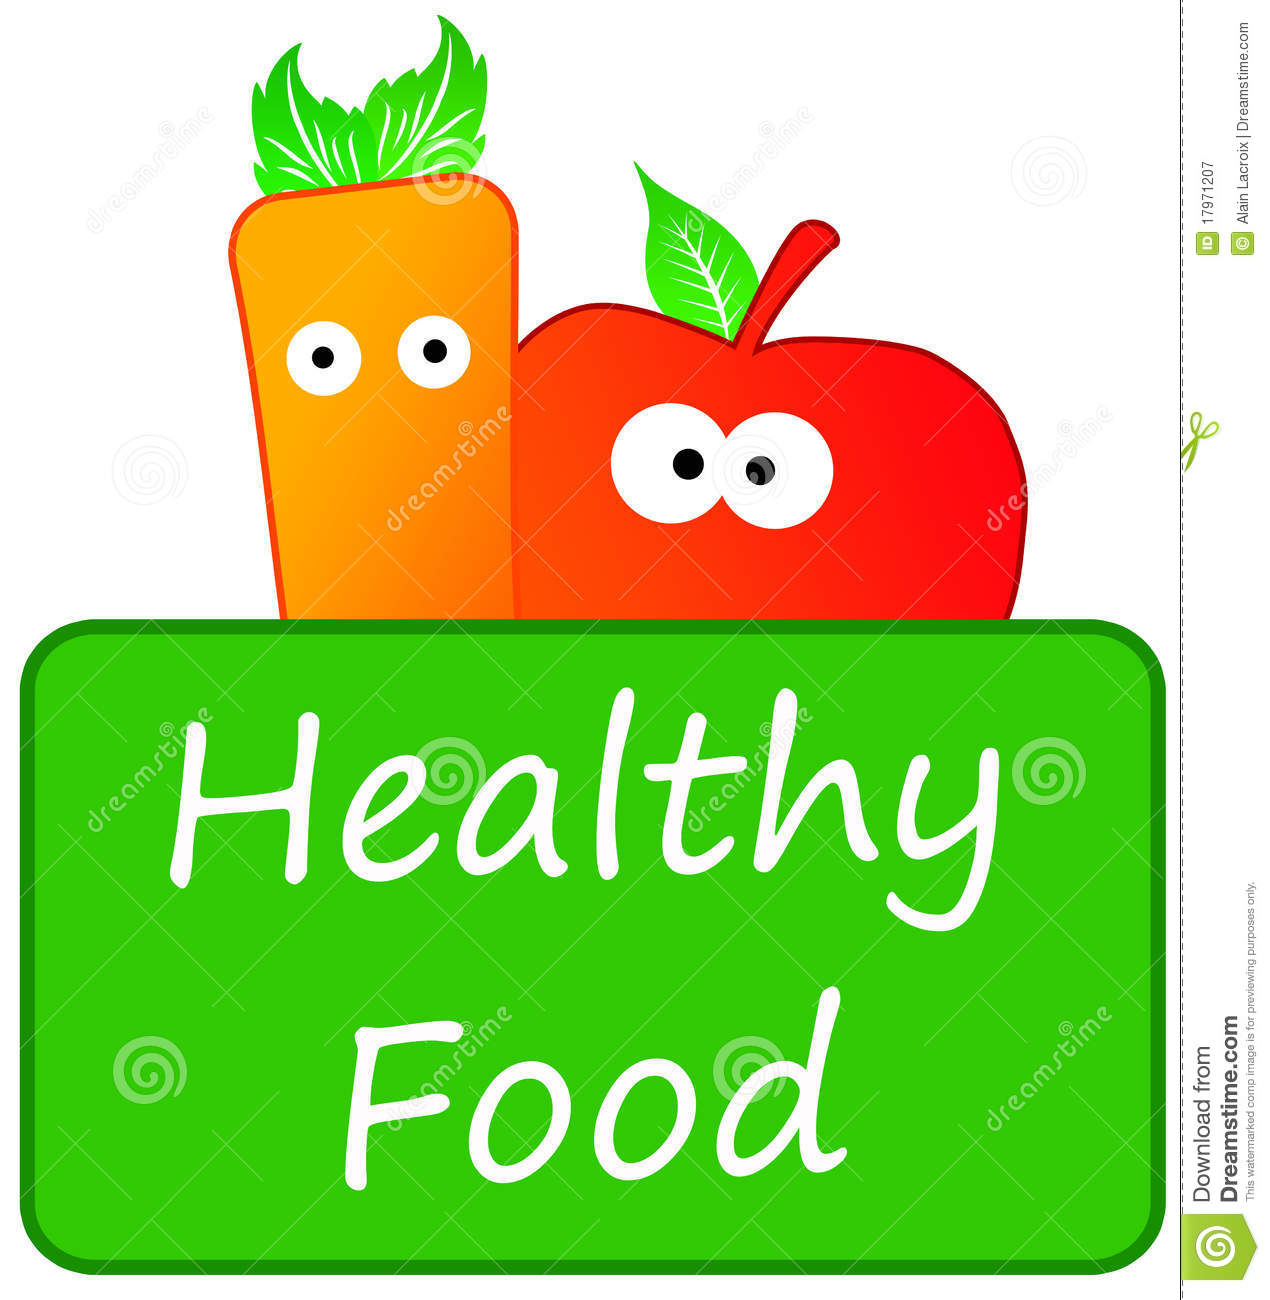 Cooking clipart healthy cooking. Images clip art library